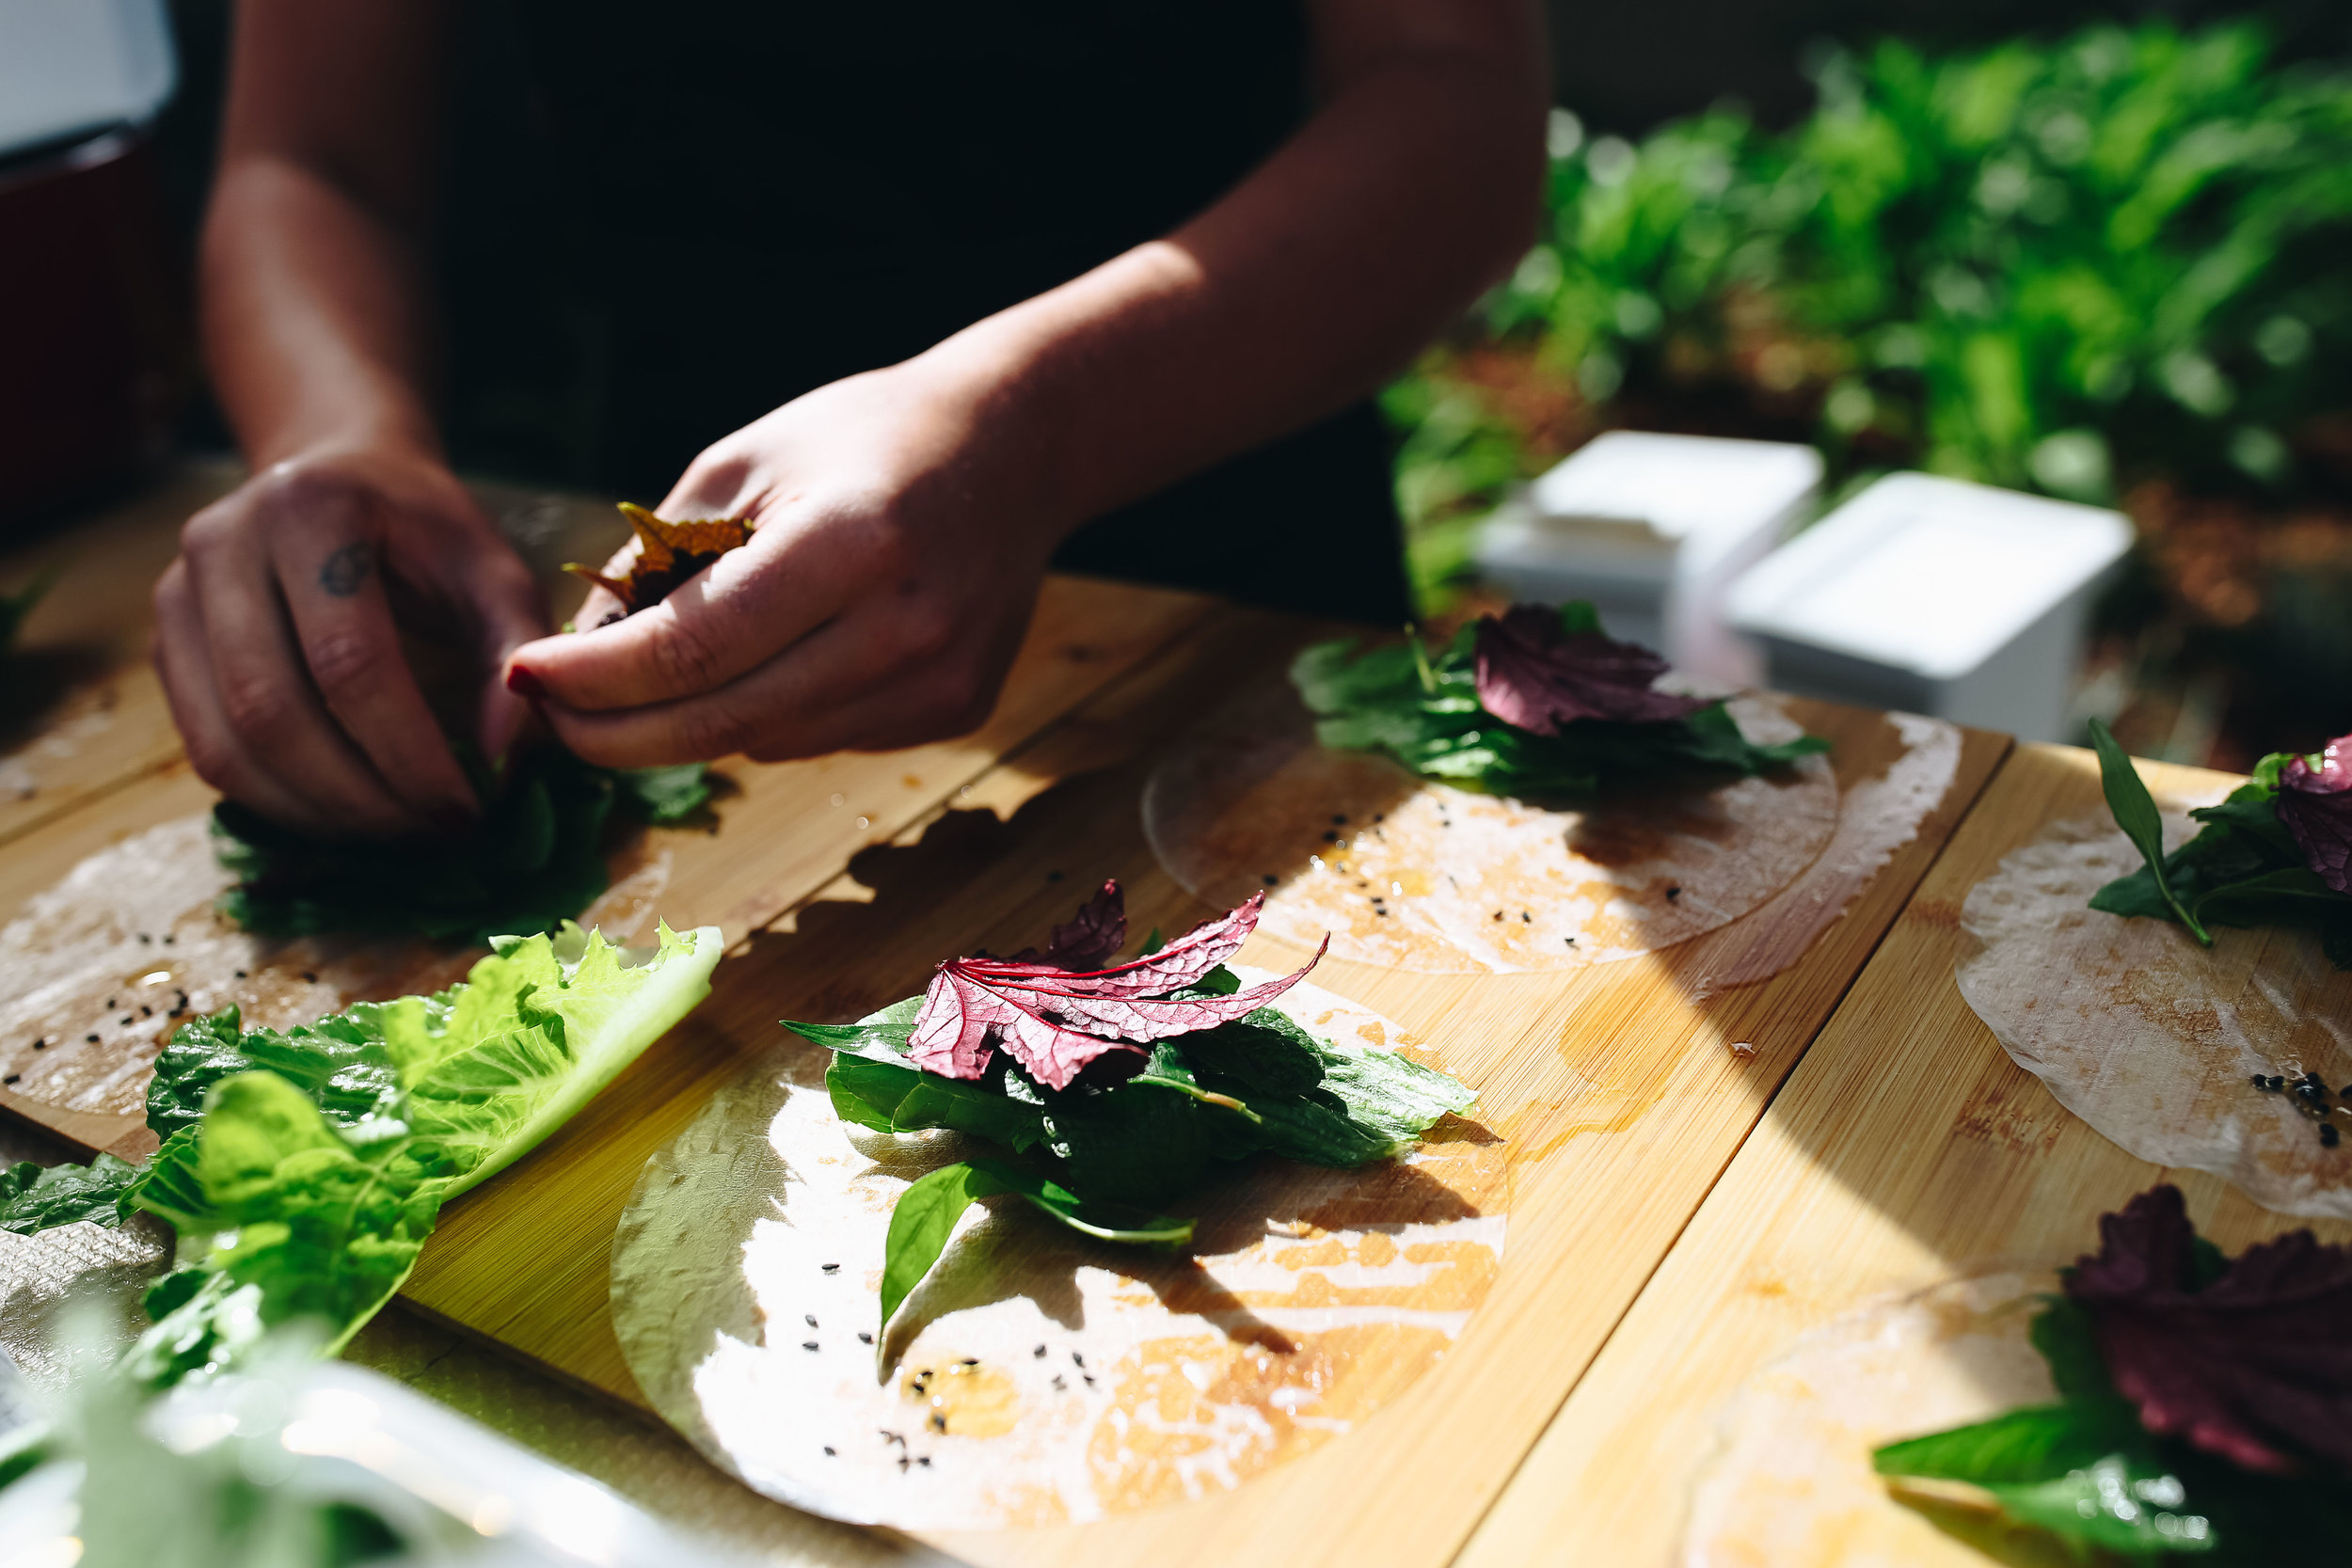 A participant of the cooking demonstration stacking on Vietnamese mint, cranberry hibiscus and fresh cos lettuce into many rice paper rolls.